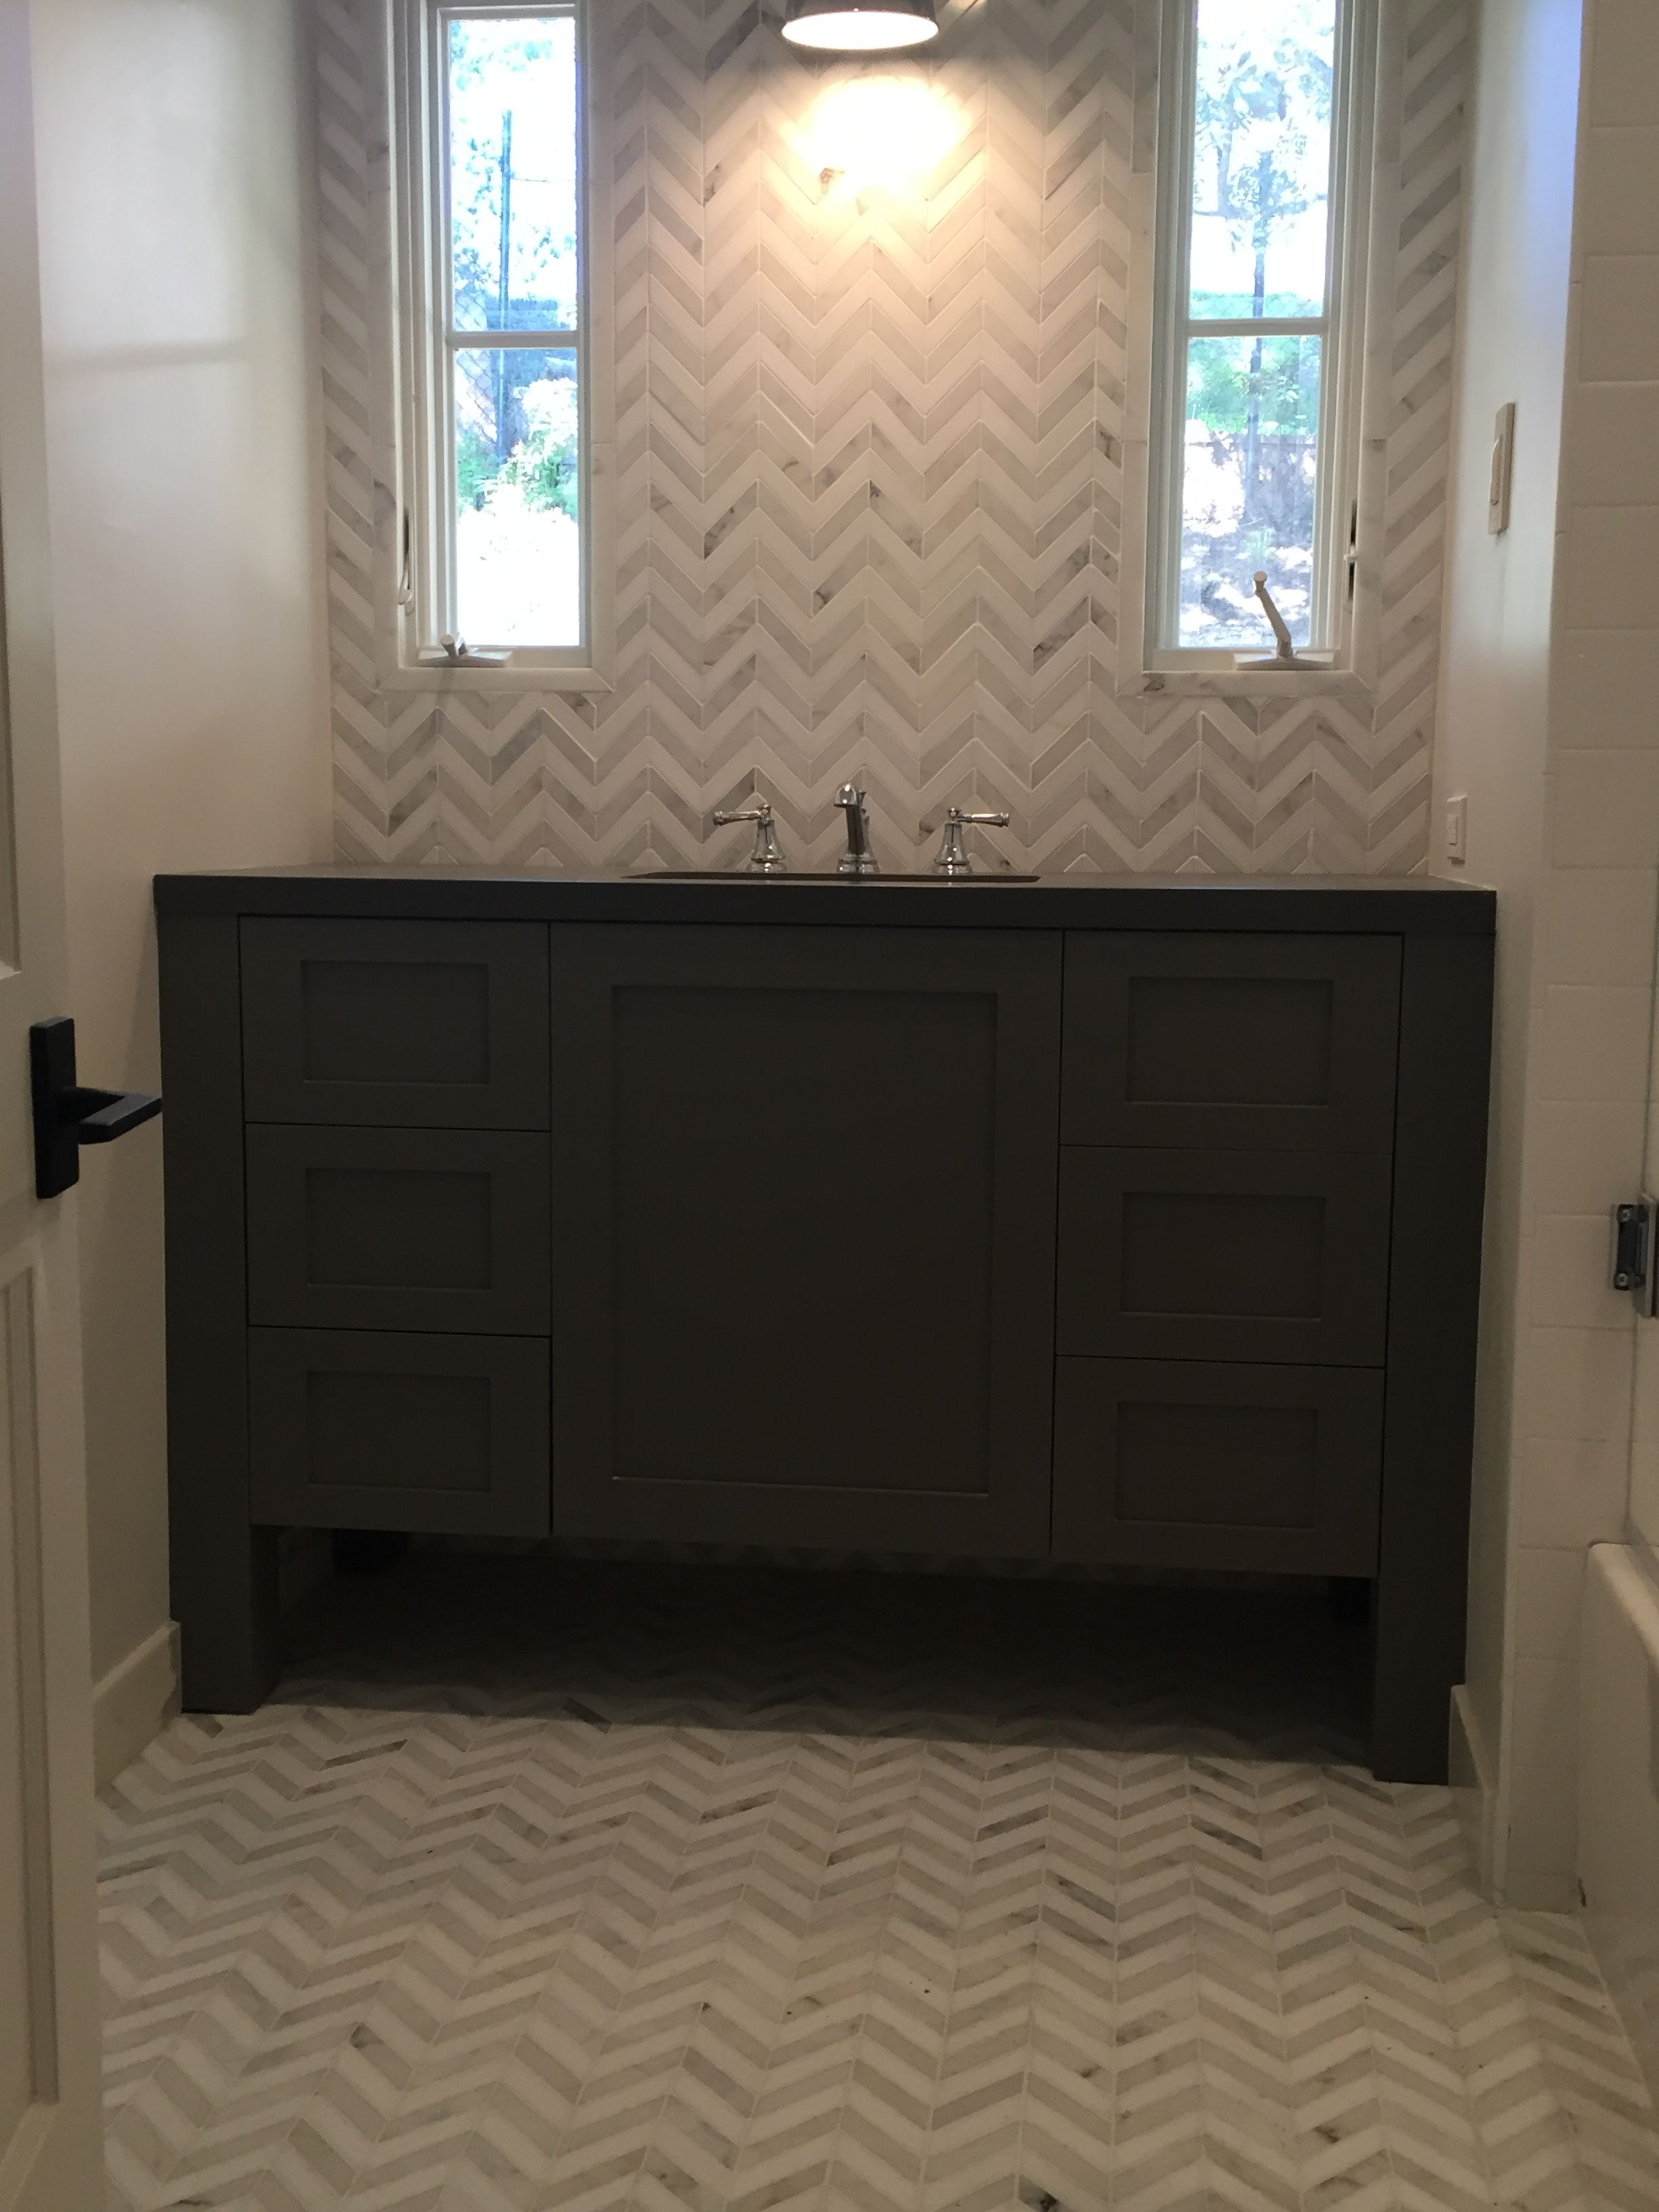 Keeping Interior Marble mosaic chevron  White subway tile